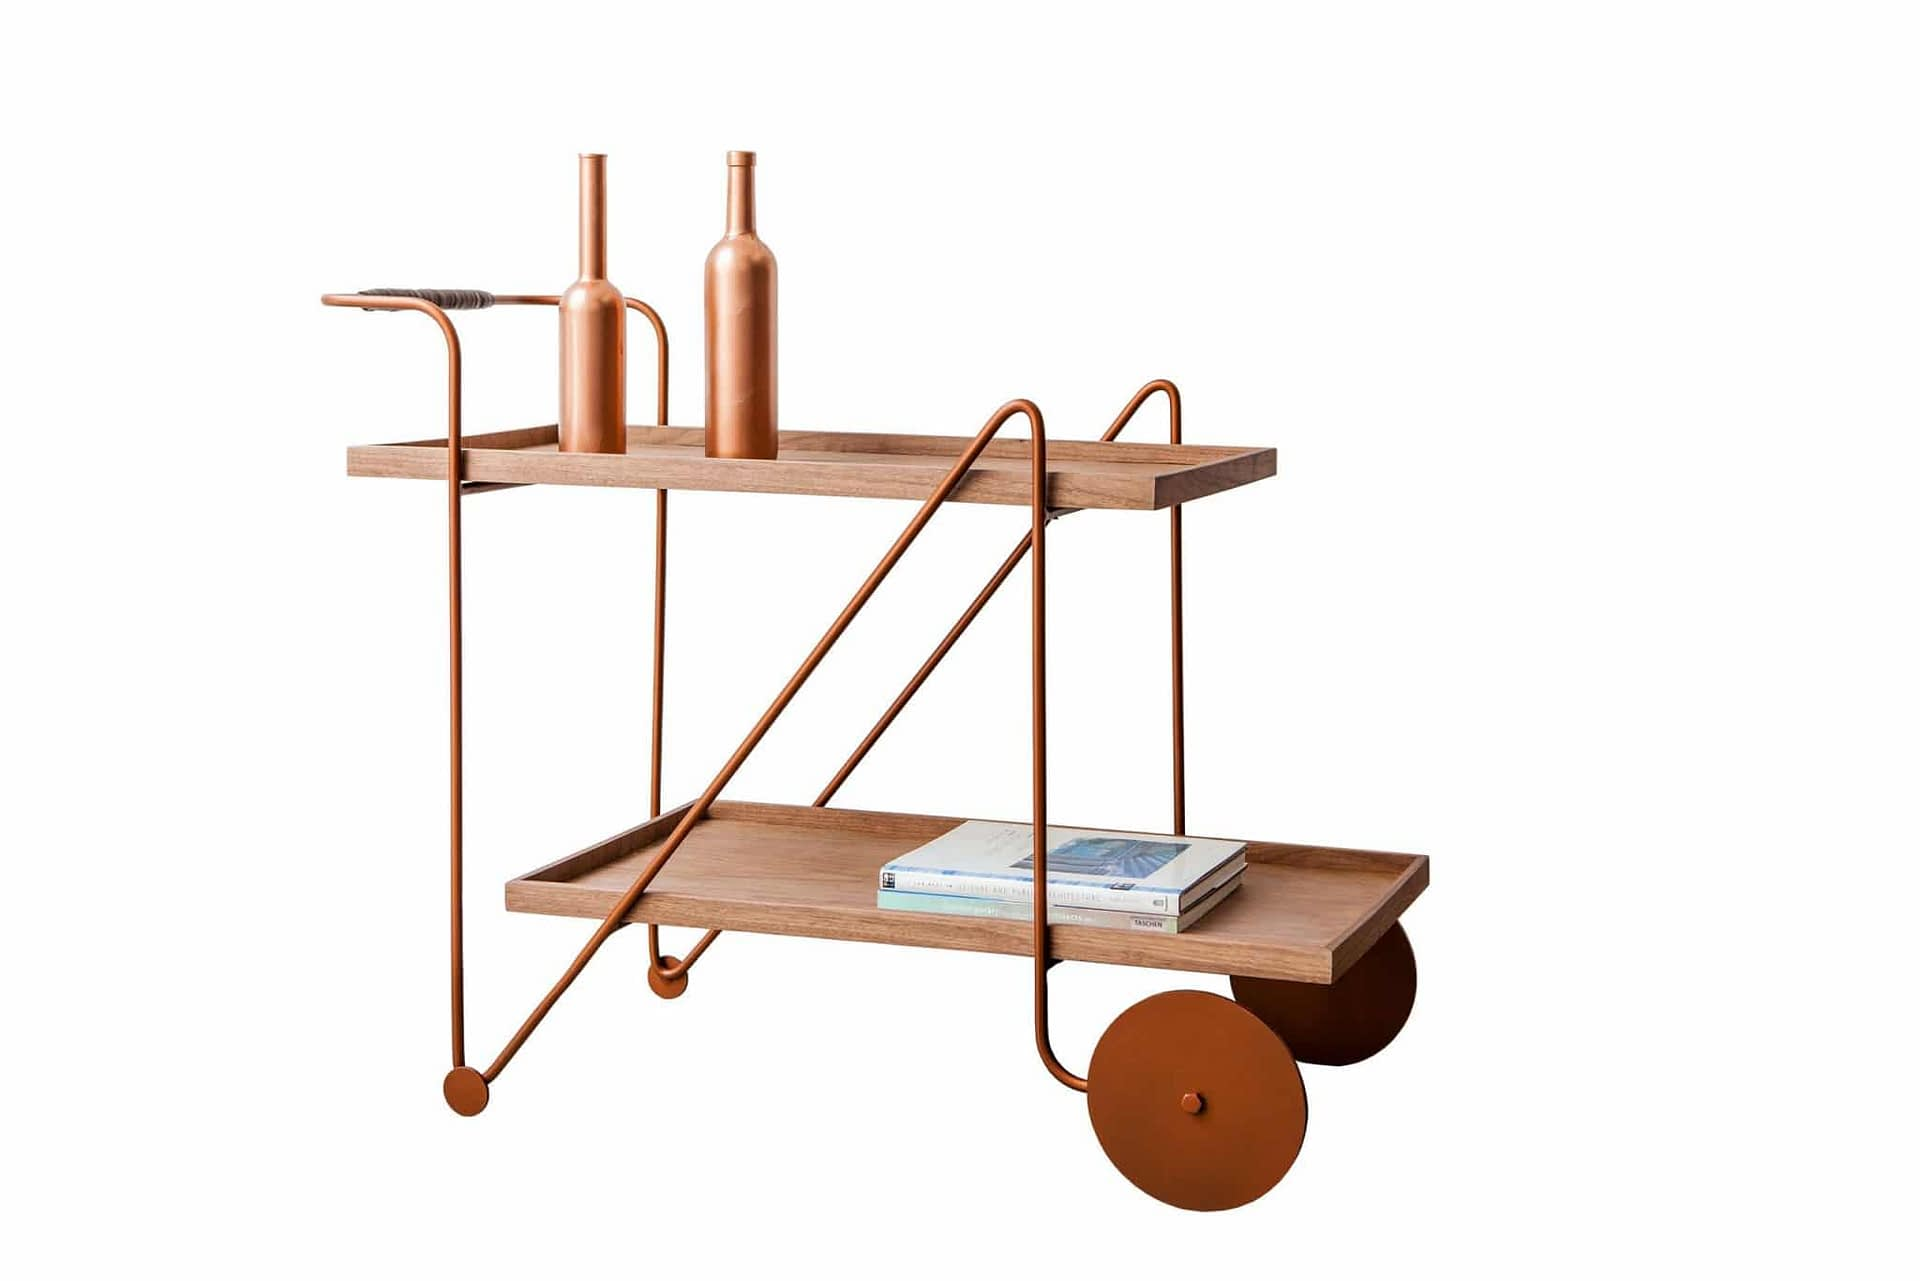 design Jorge Bar Cart designer Alessandra Delgado Design